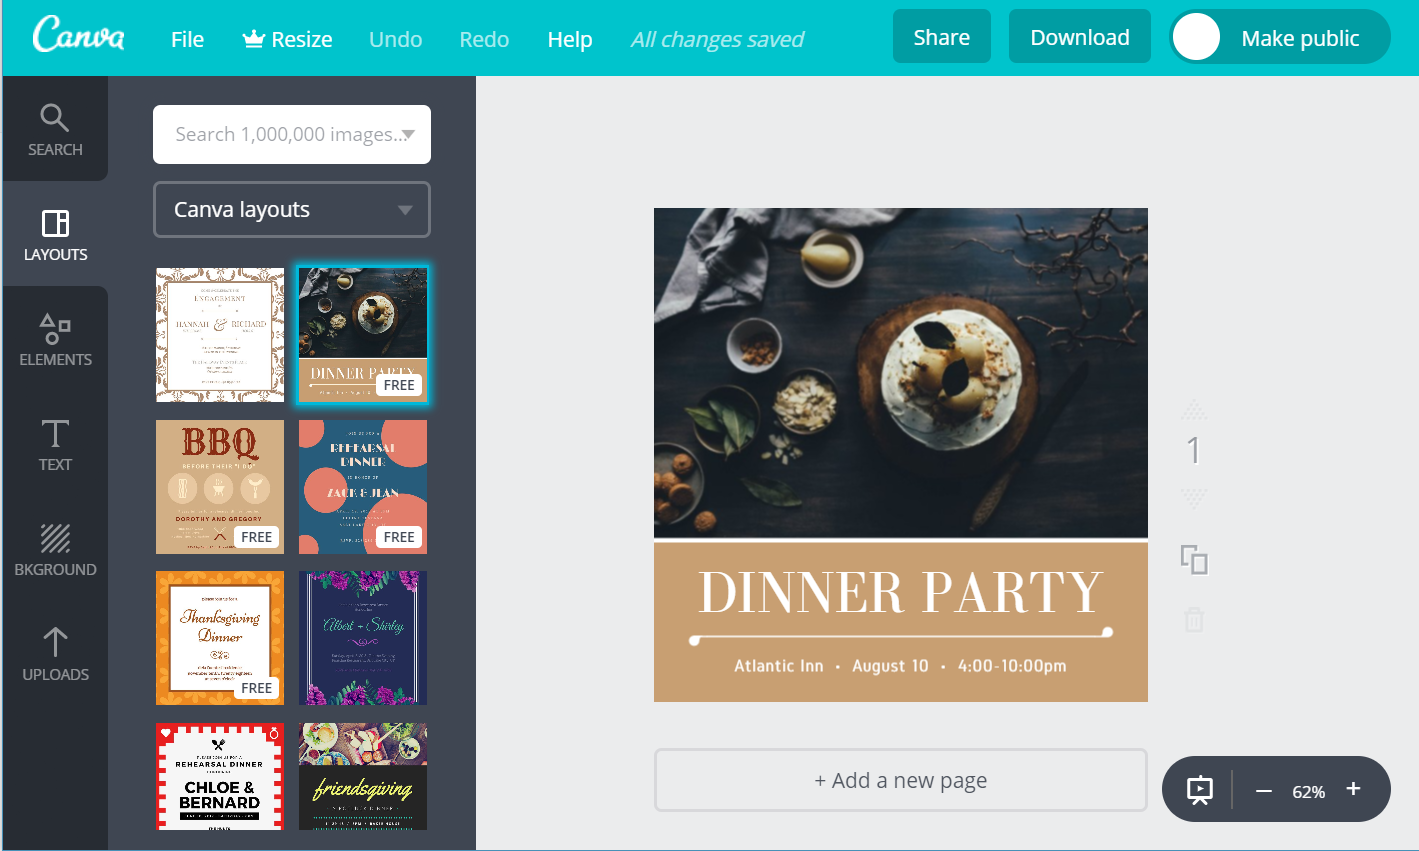 Free Dinner Invitation – Free Dinner Invitations